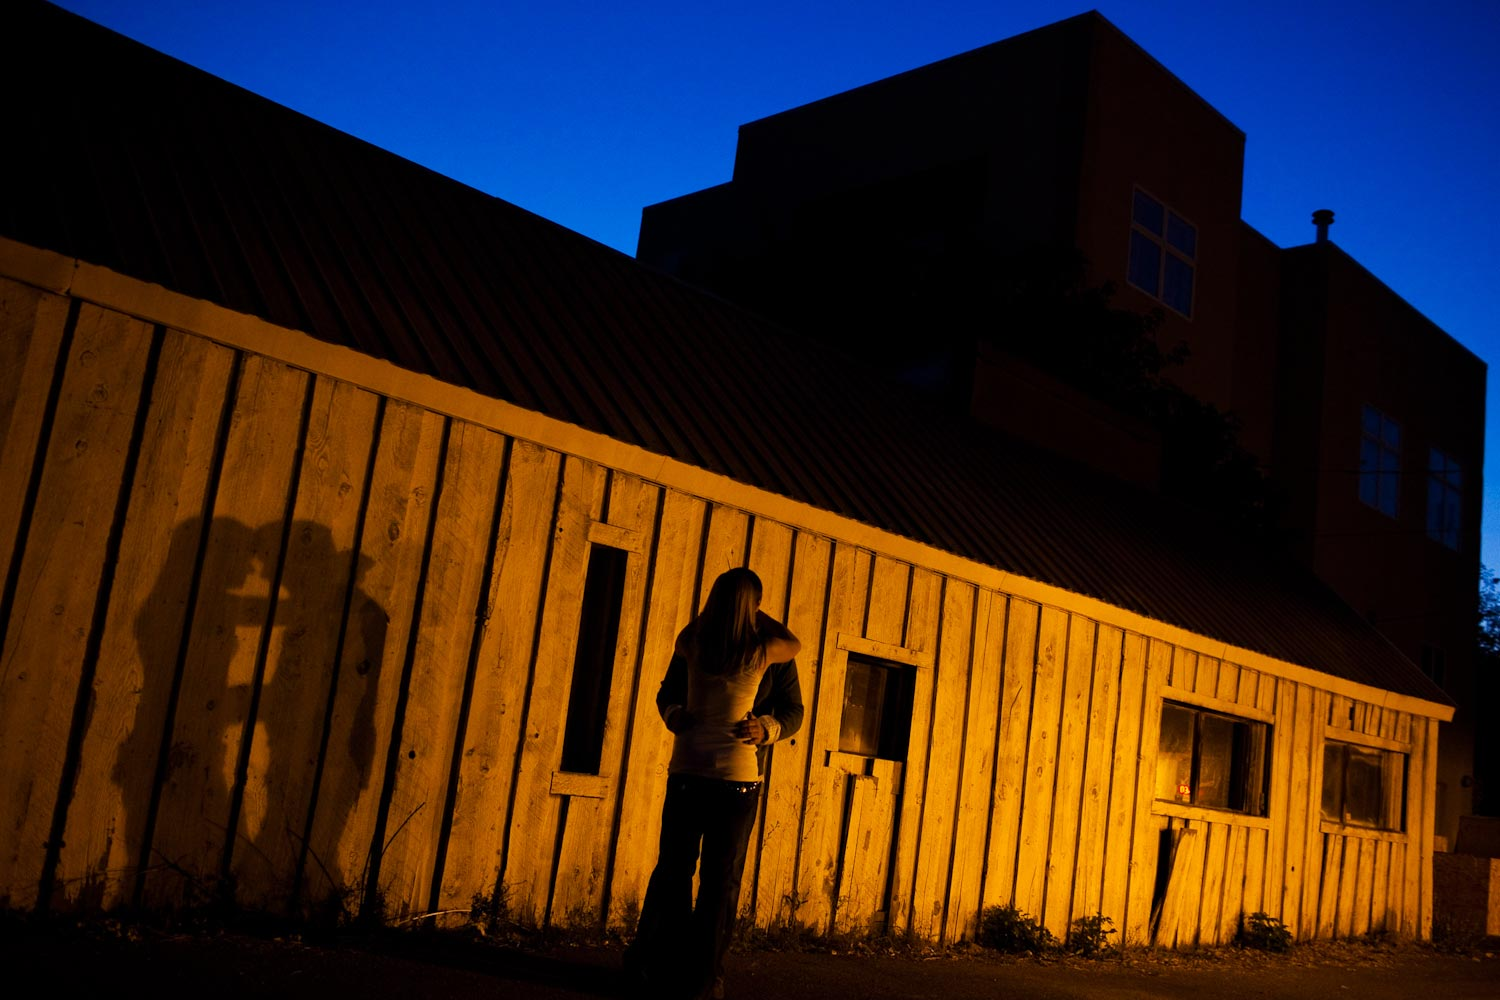 A night photograph of an engaged couple who have stopped for a kiss in an alley in Ketchum, Idaho.